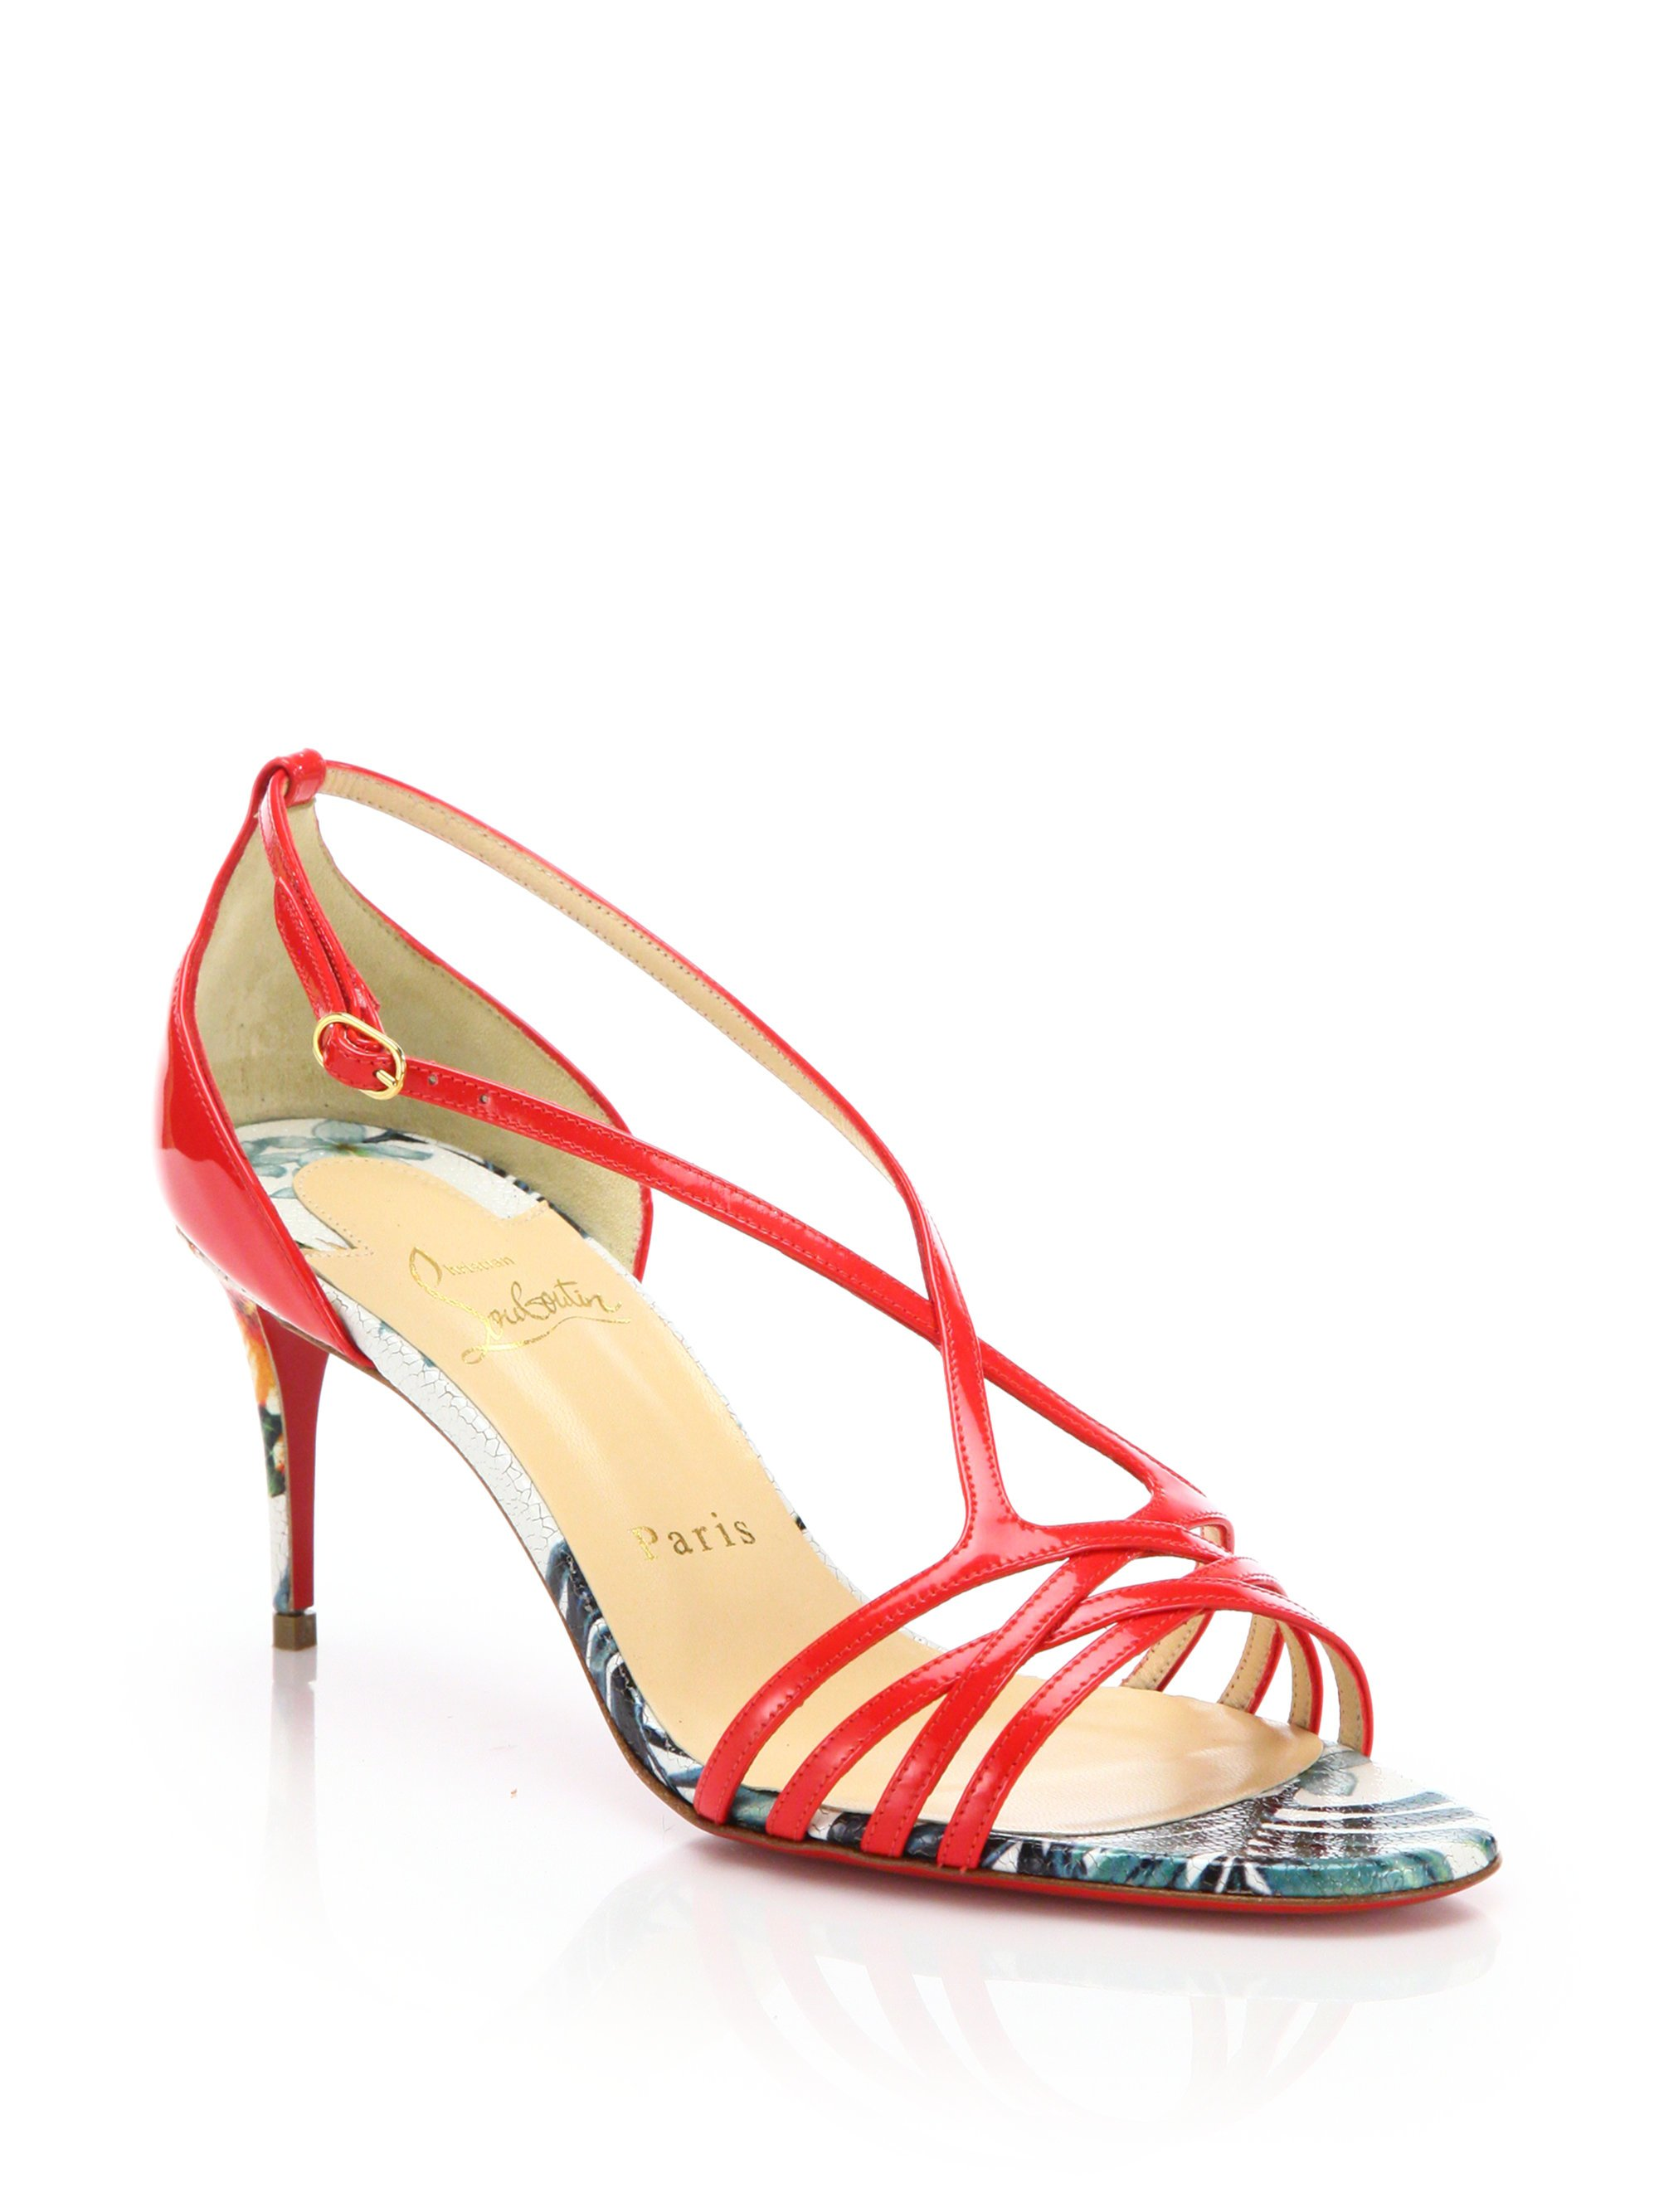 e8725fe76413 Lyst - Christian Louboutin Olydia Patent Leather Sandals in Red